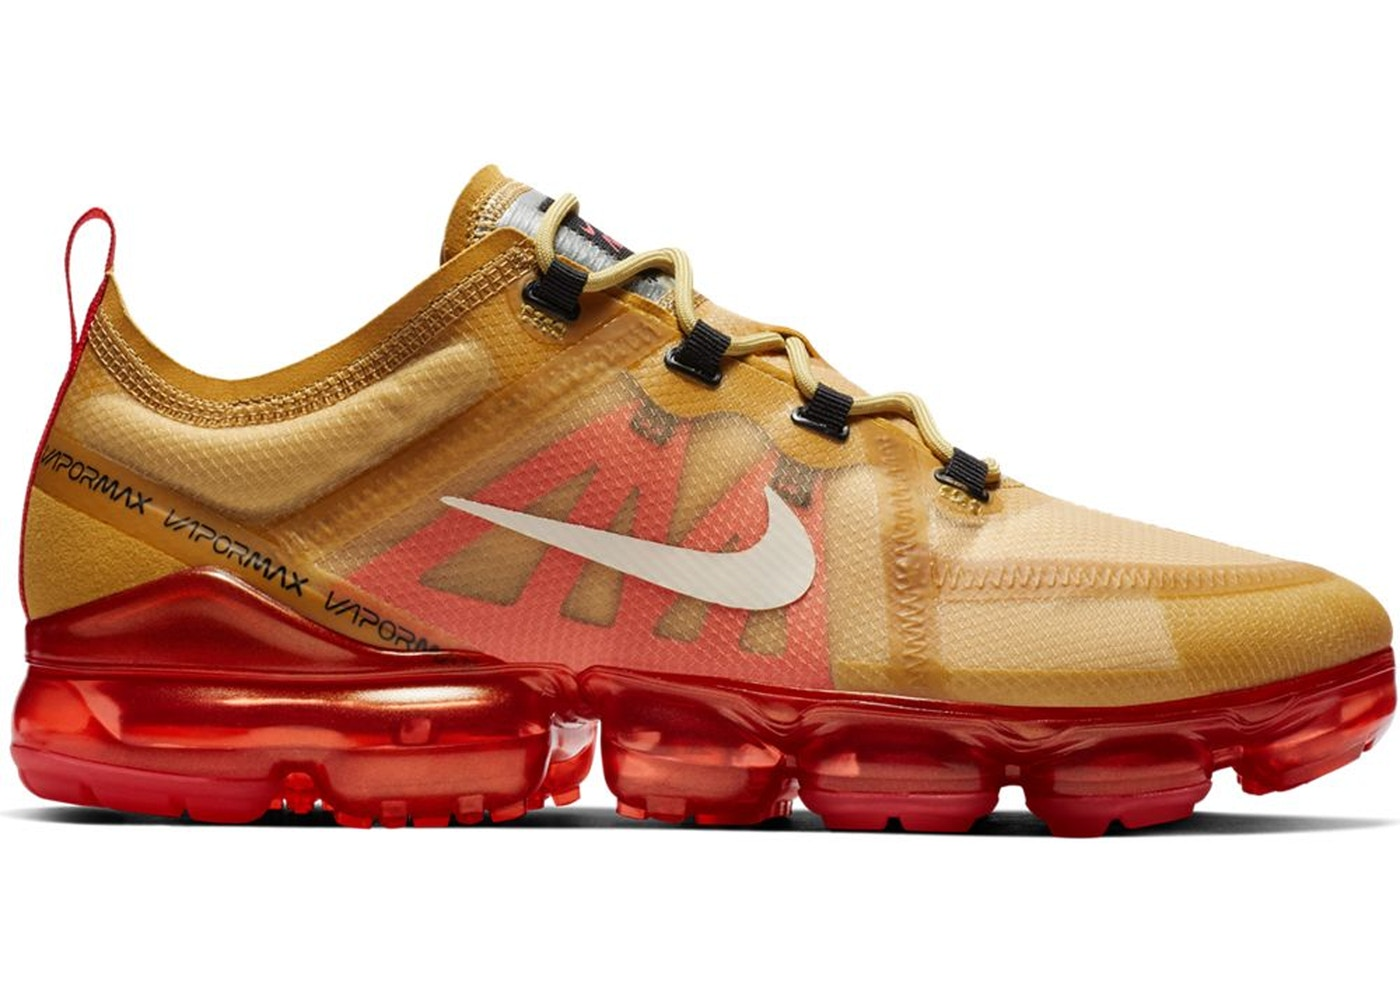 dbc605f3379 Air VaporMax 2019 Club Gold Ember Glow - AR6631-701